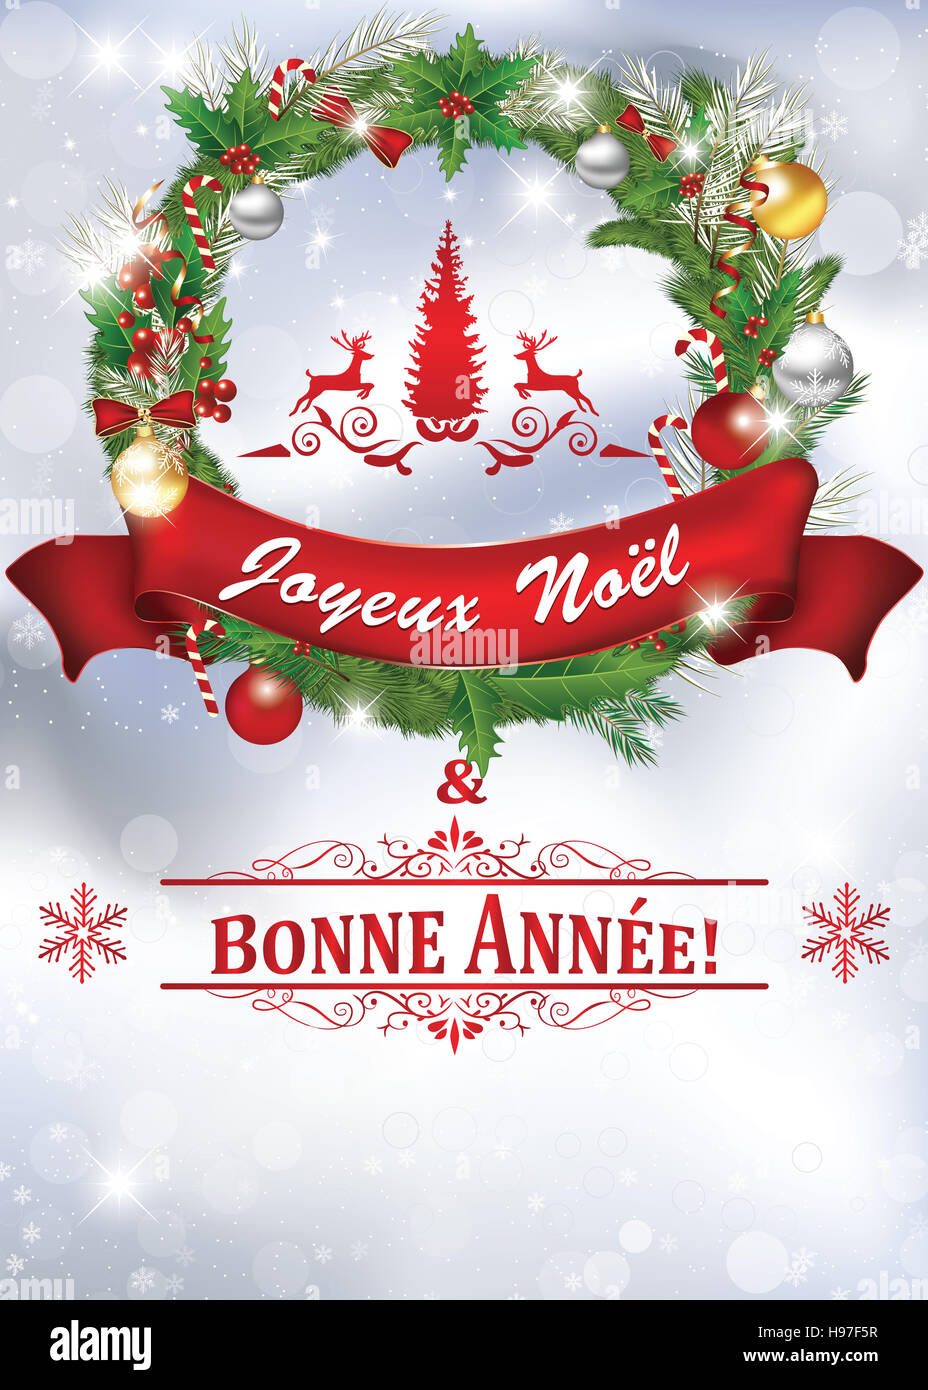 Printable New Year Greeting Card With Message In French Language